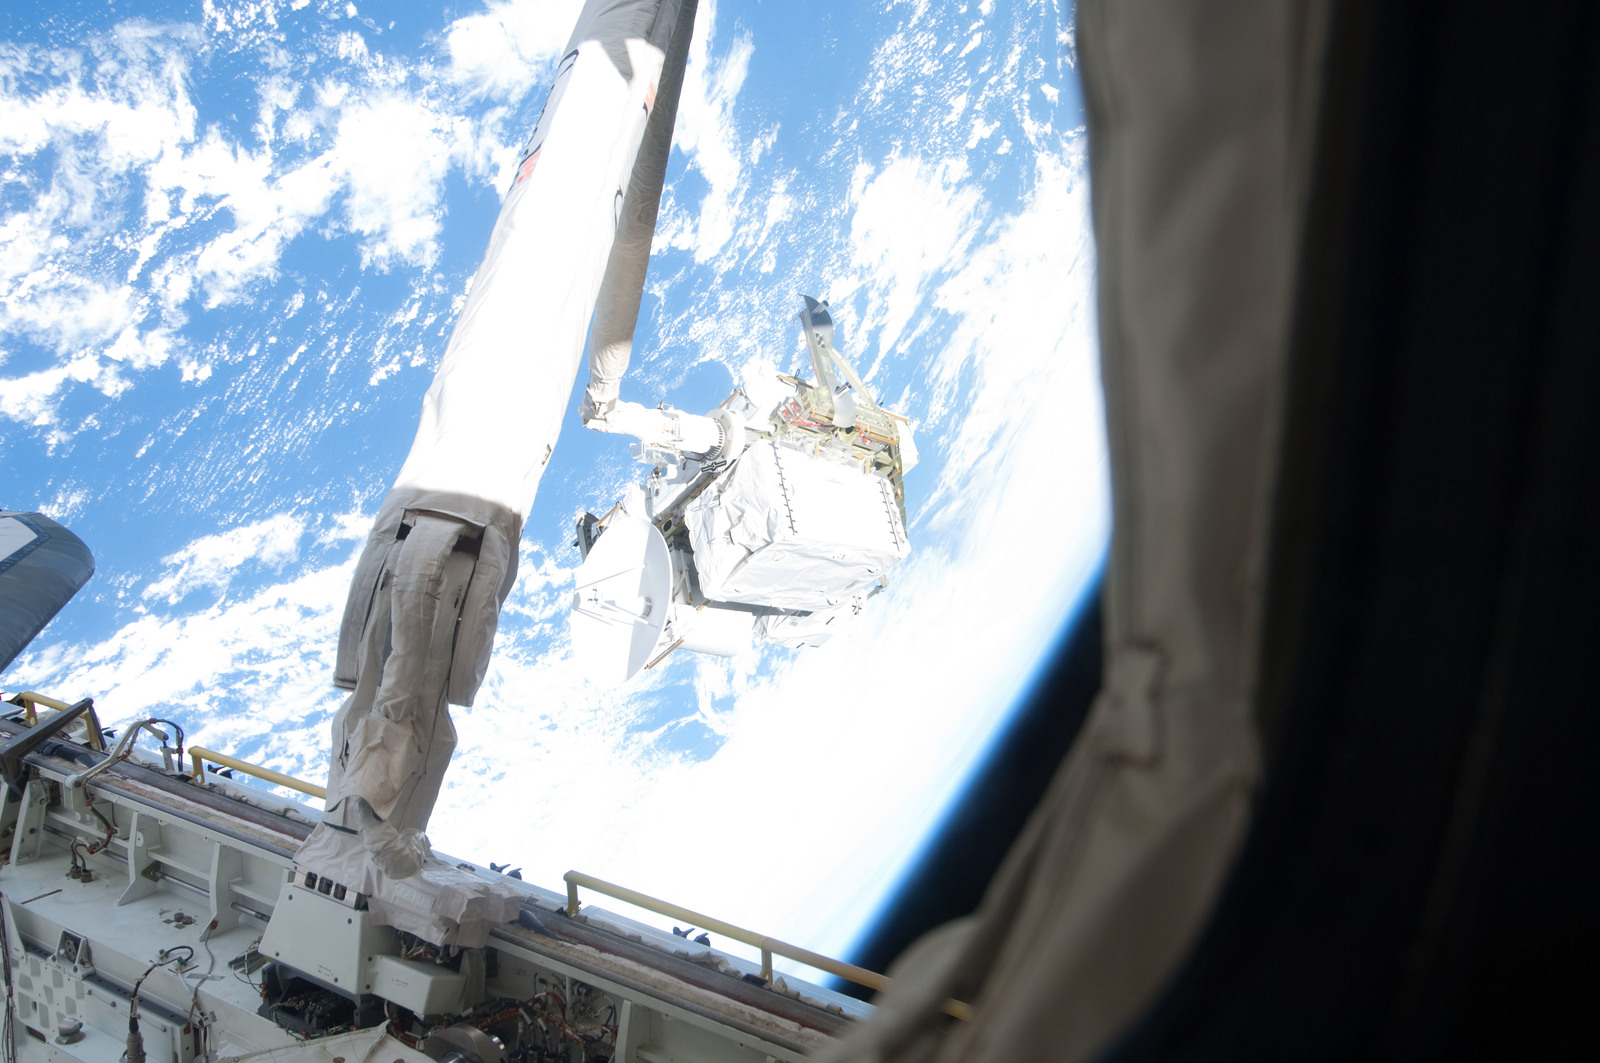 S127E006929 - STS-127 - SRMS maneuvers the ICC-VLD during STS-127 / Expedition 20 Joint Operations